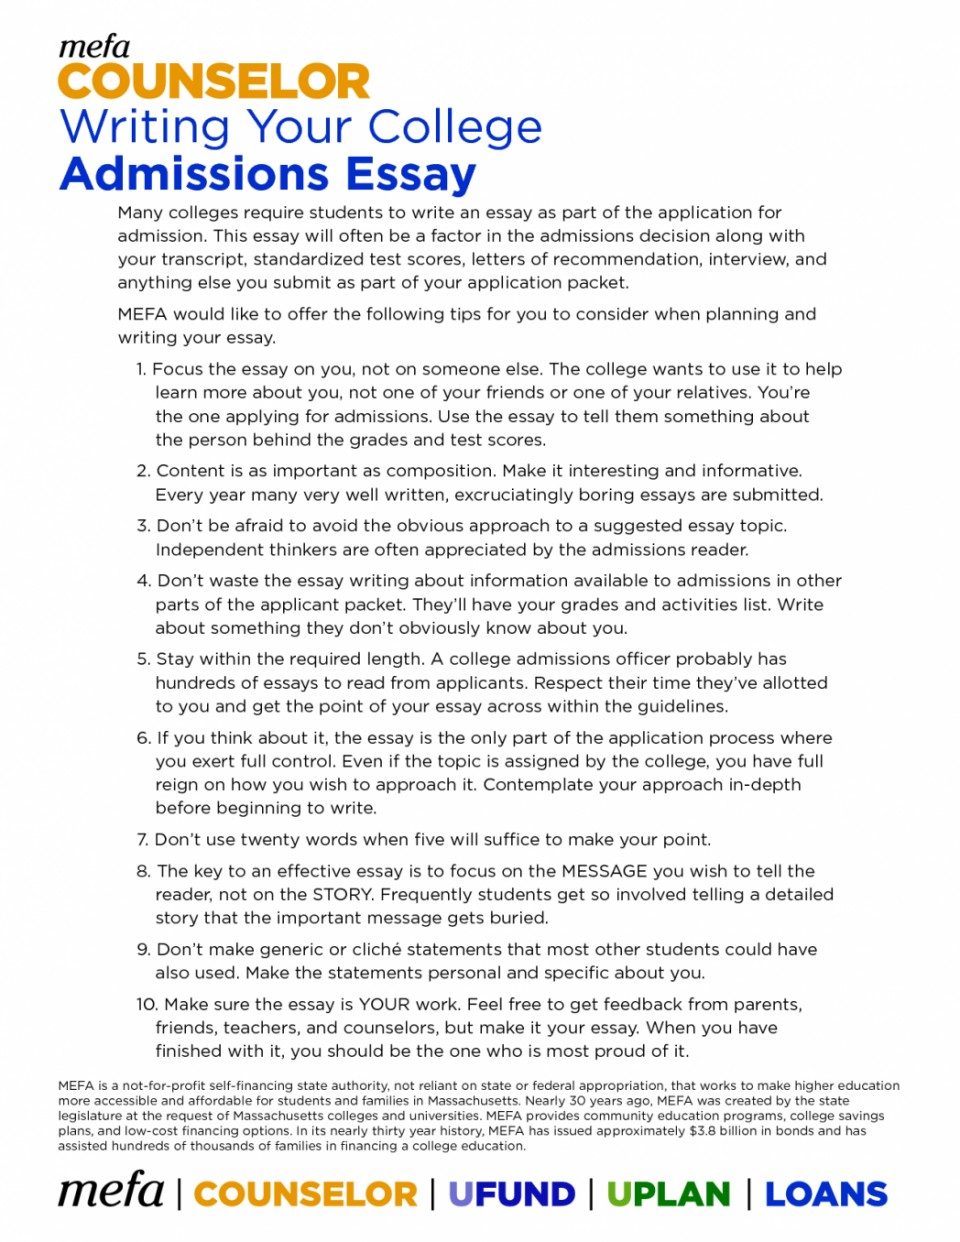 016 Essay Example College Writing Help High School How Many Paragraphs Should Application Wuaom Pages Words Long What About Formatted In Mla Format 1048x1356 Are An Unforgettable Introduction There Argumentative 960